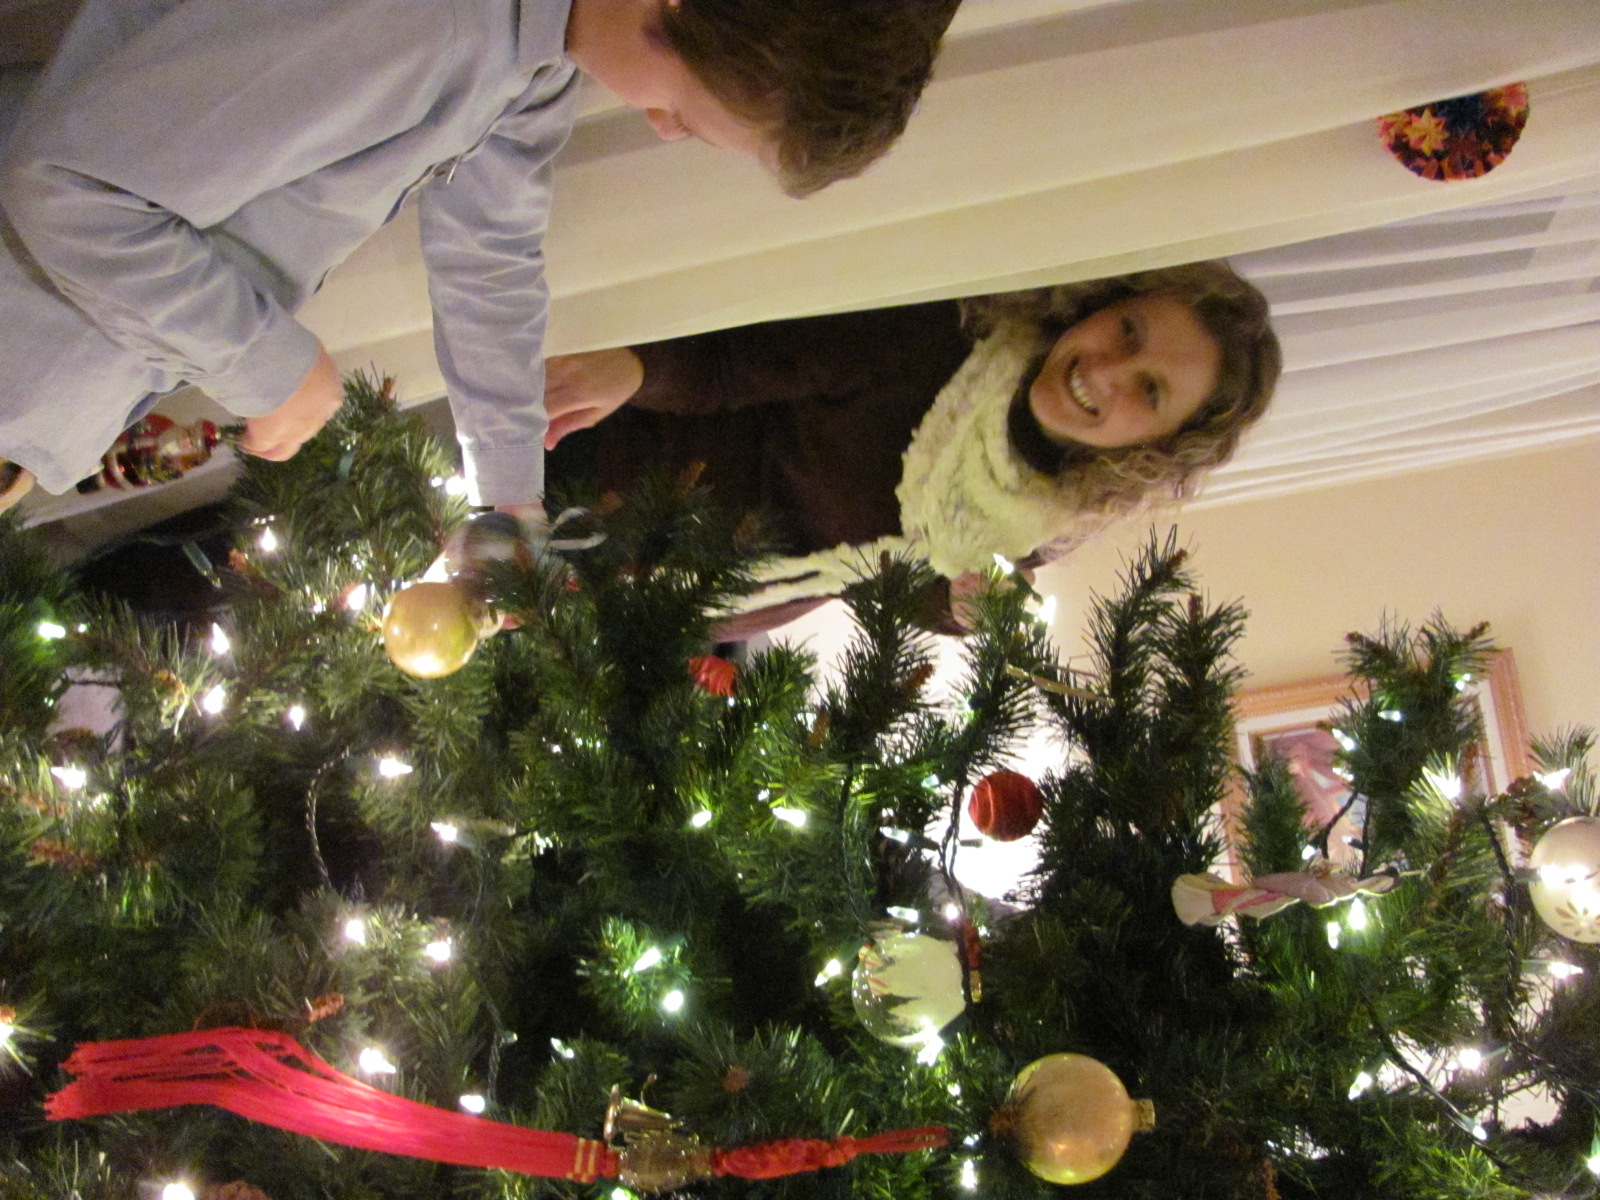 Decorating the church tree